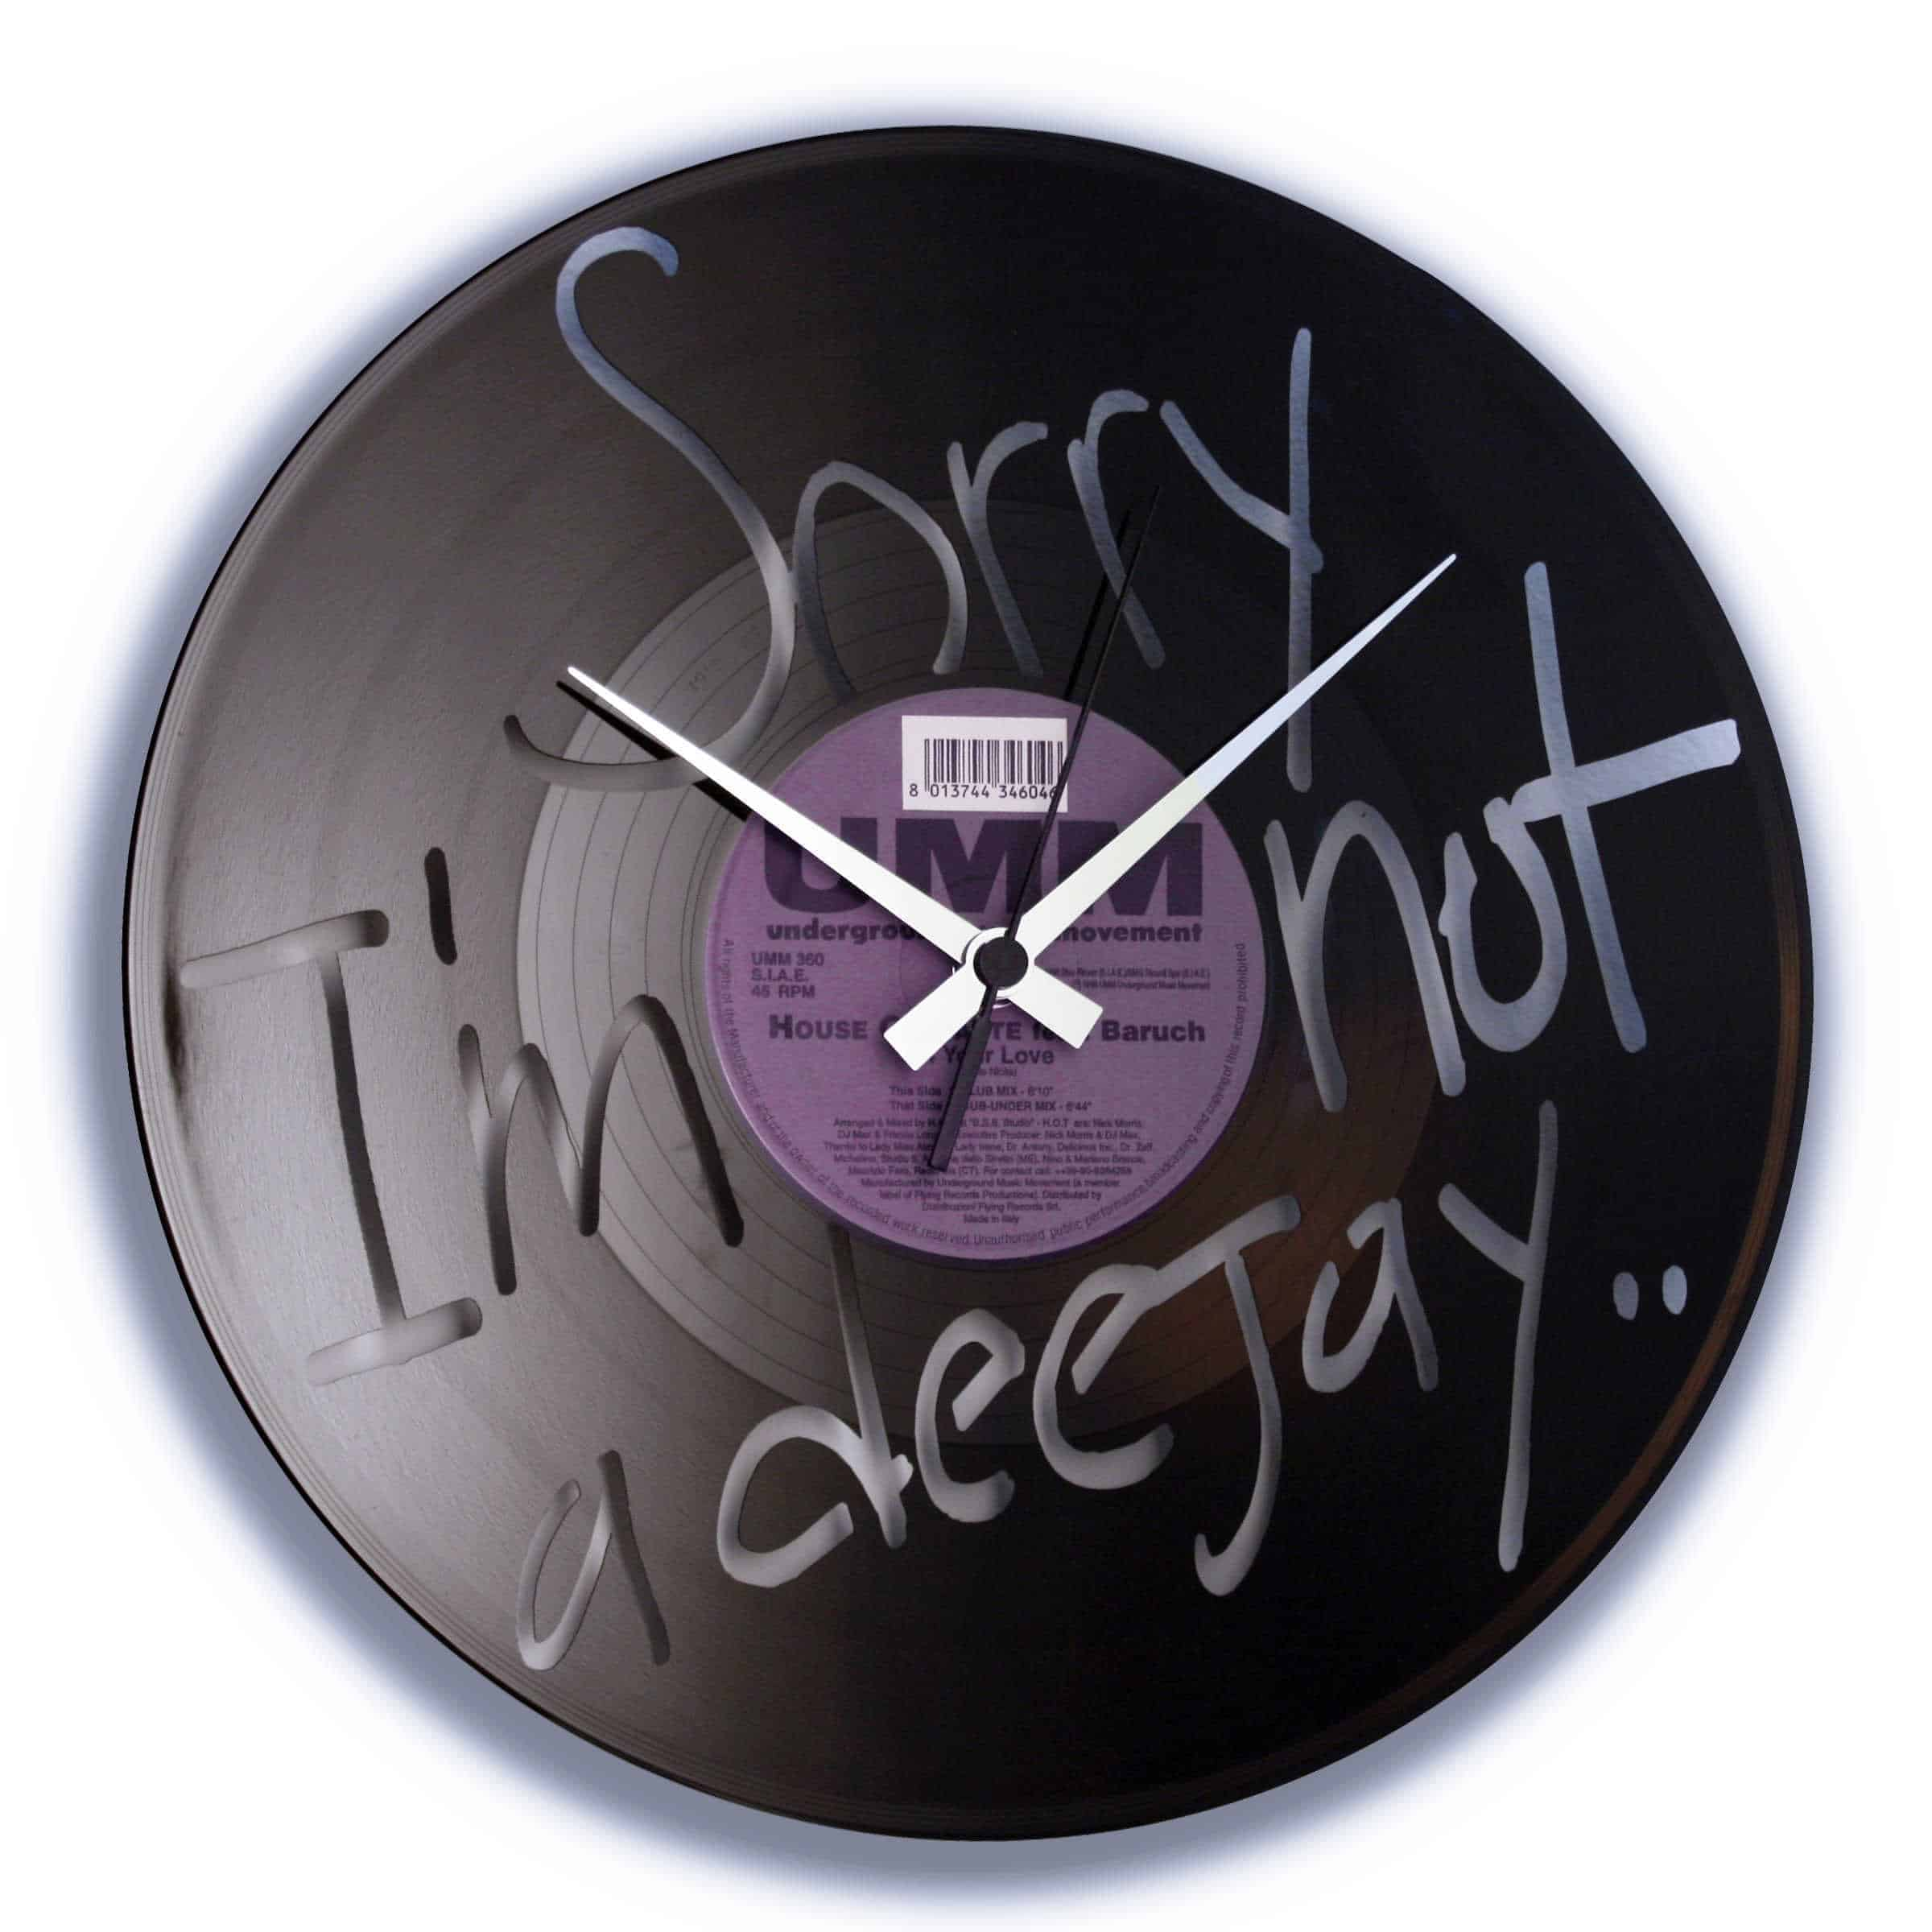 sorry i'm not a deejay, spoon my, vinyl clock, deejay